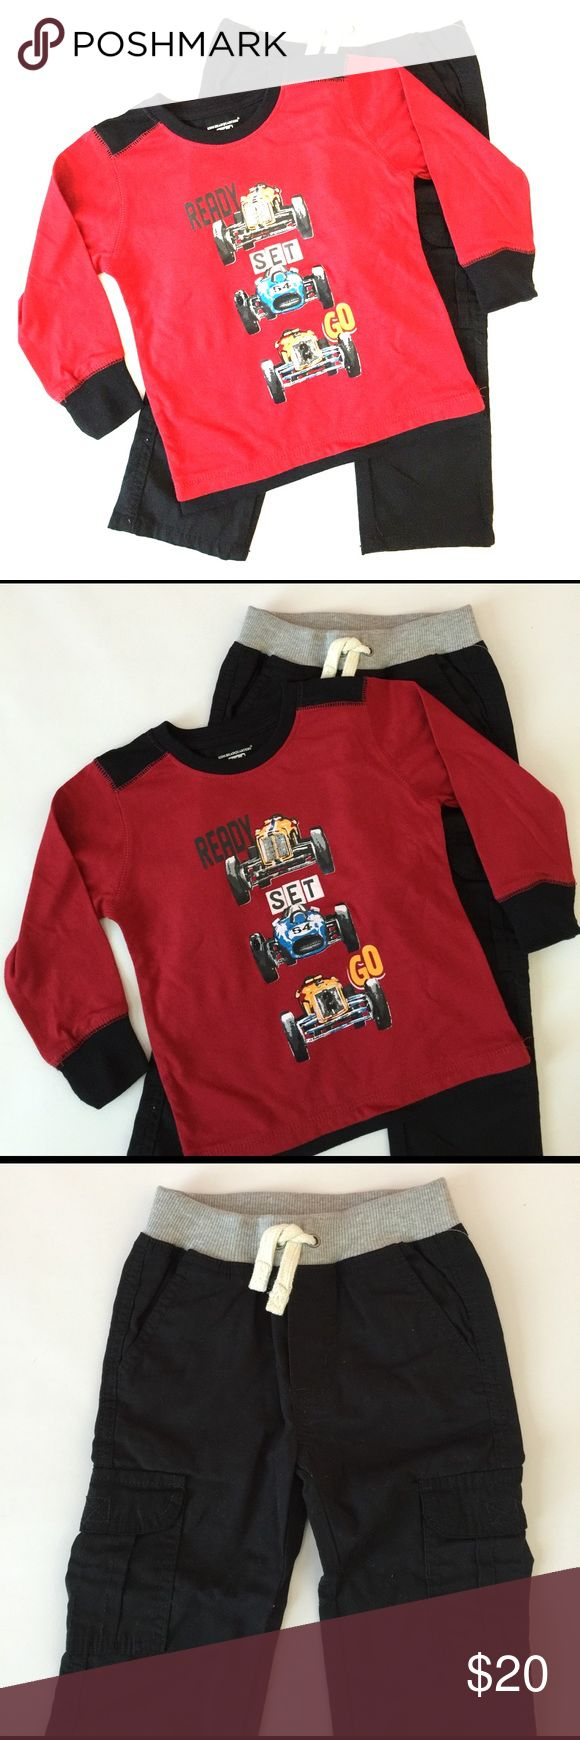 Black and red race car cargo pants long tee set 3T New with tags. Pants have elastic waistband. Bundle to save 25%! Kids Headquarters Matching Sets